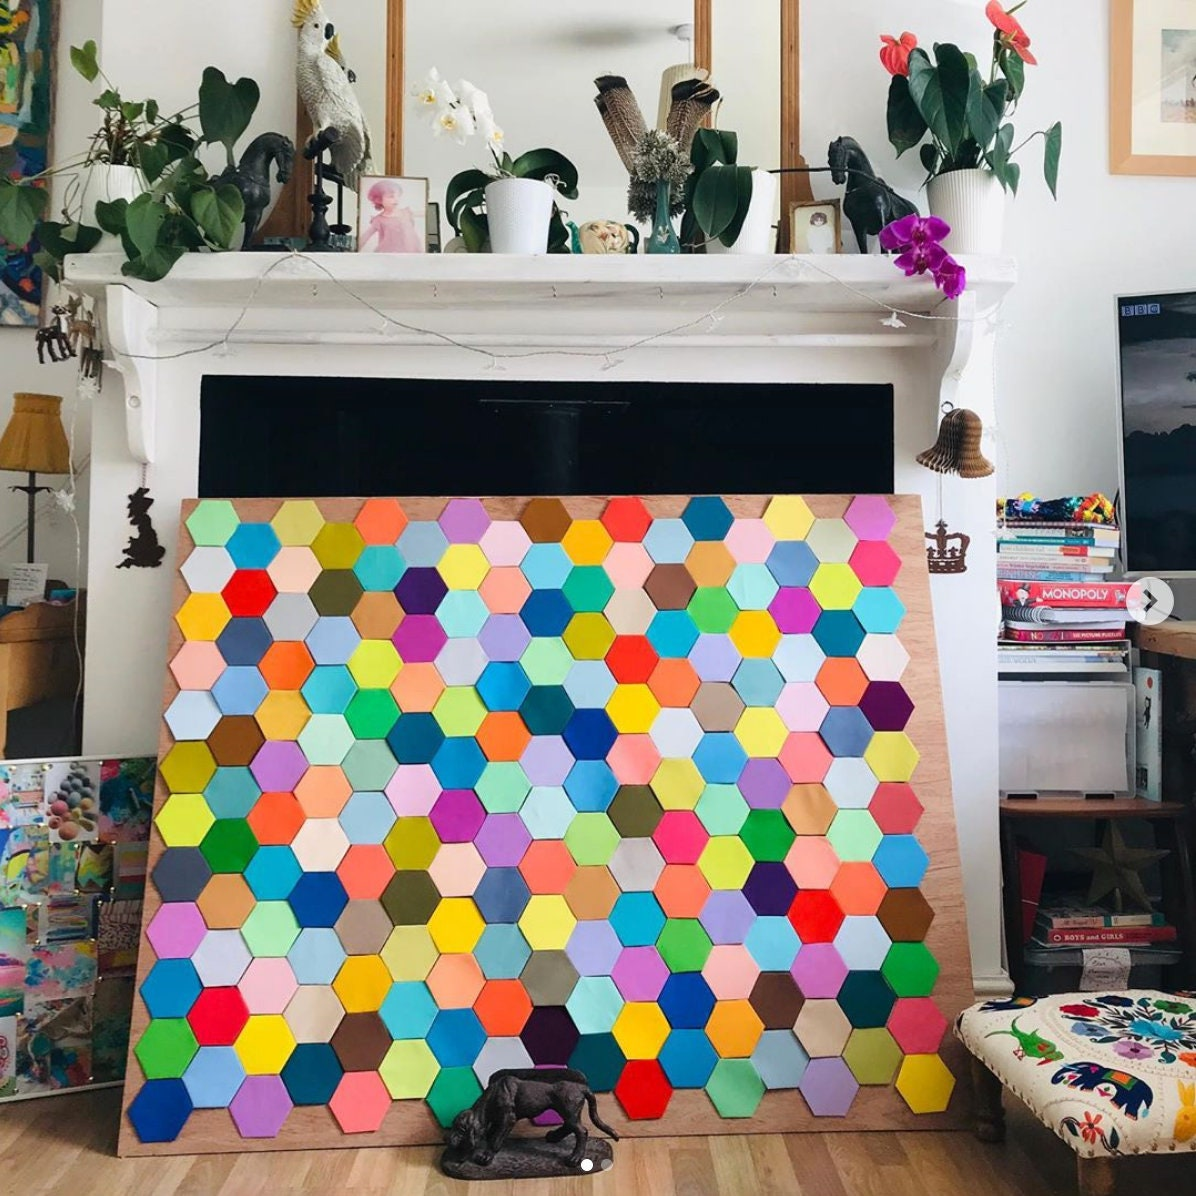 Bonne vibes Cosmic Rainbow Quilt (Handmade Art-Quilt Patchwork Hexagon)